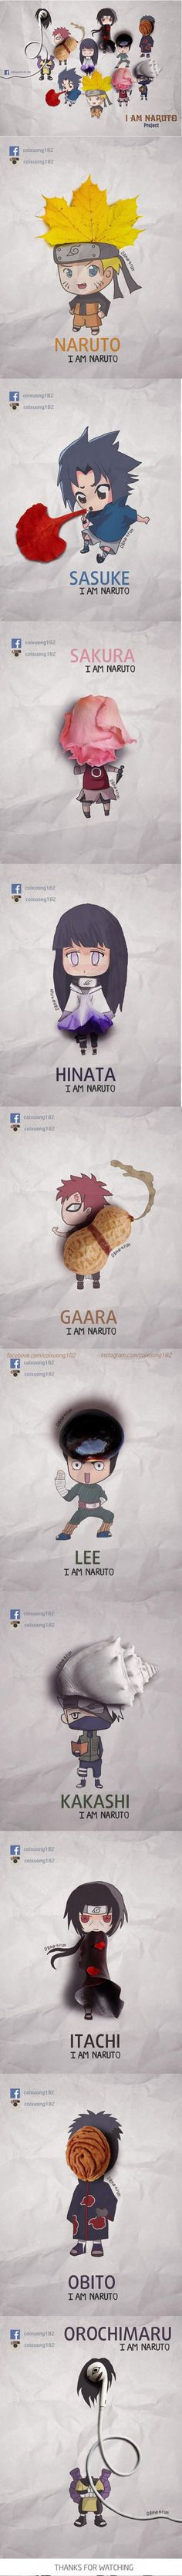 I haven't even watched Naruto, but this is amazing. Naruto's Character by Nguyen Quang Huy